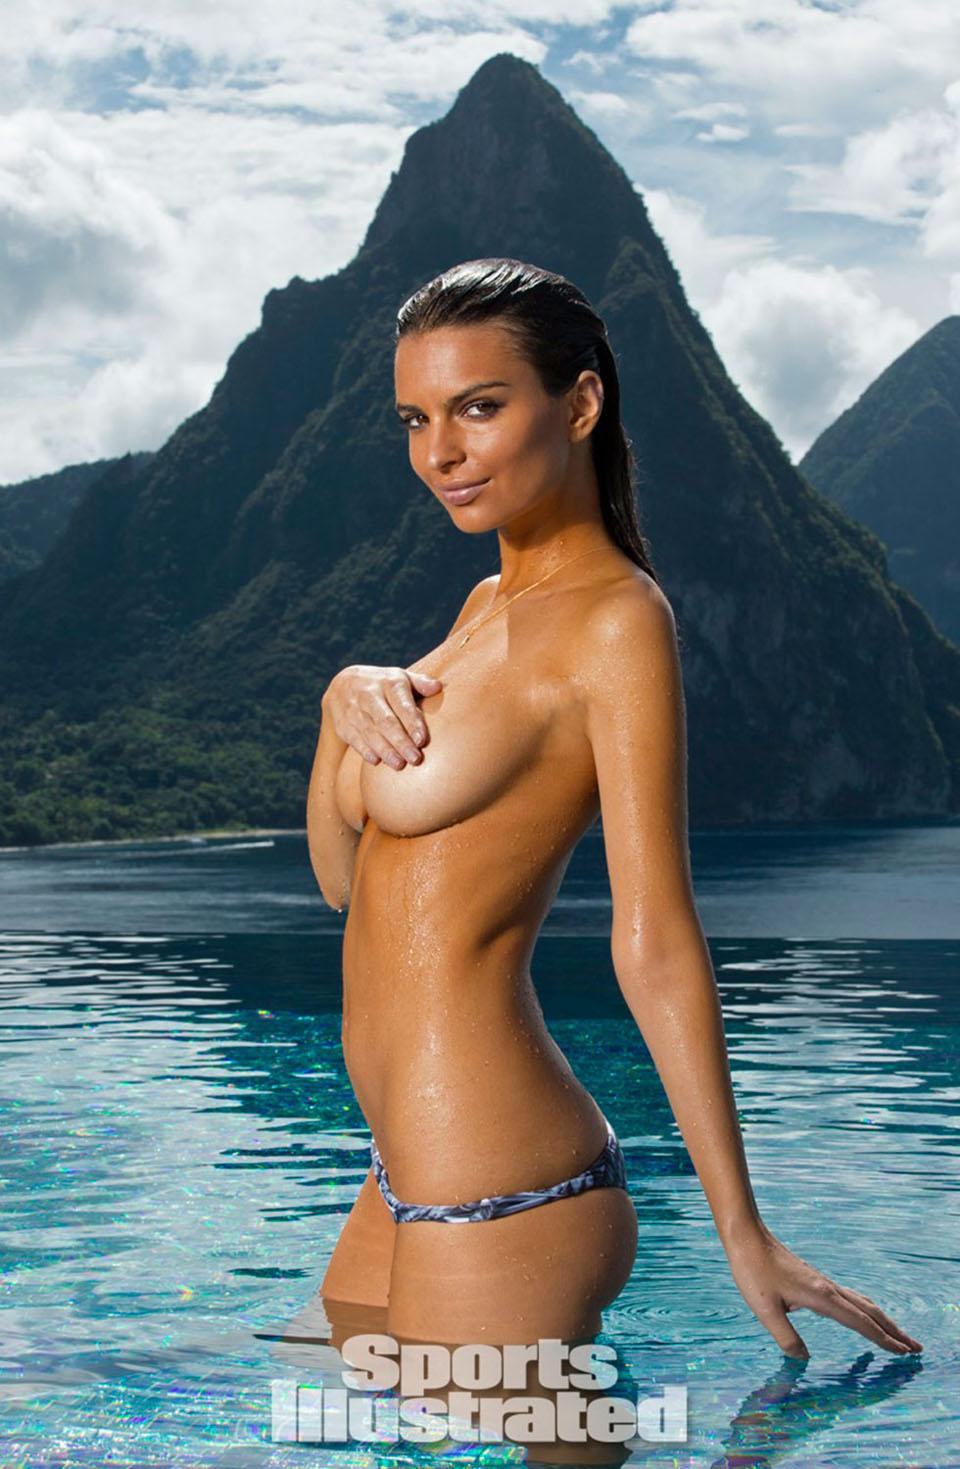 Sports illustrated swimsuit models naked picture 26